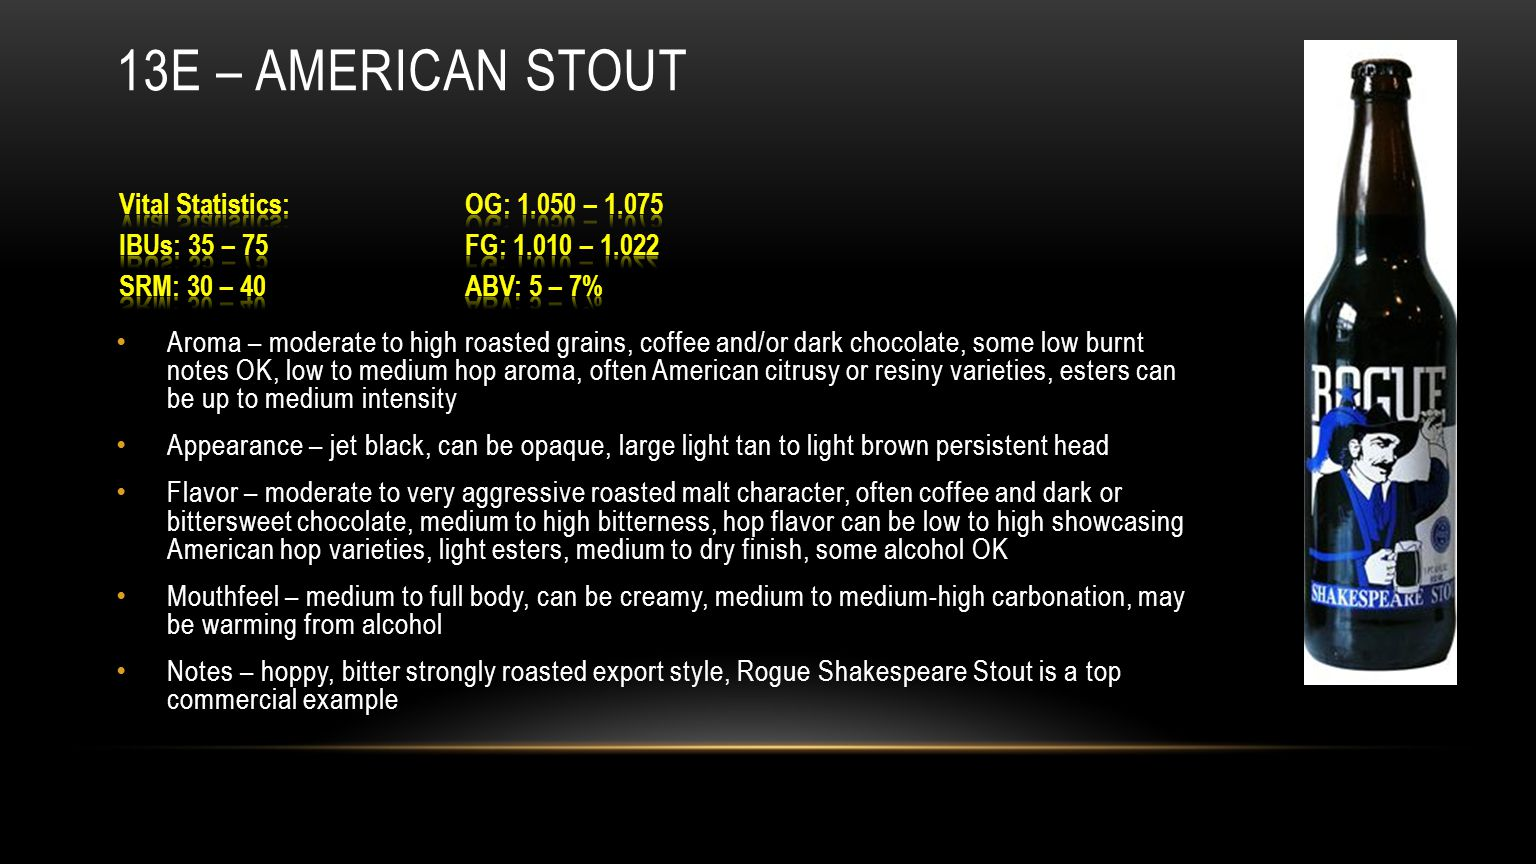 Aroma – moderate to high roasted grains, coffee and/or dark chocolate, some low burnt notes OK, low to medium hop aroma, often American citrusy or res